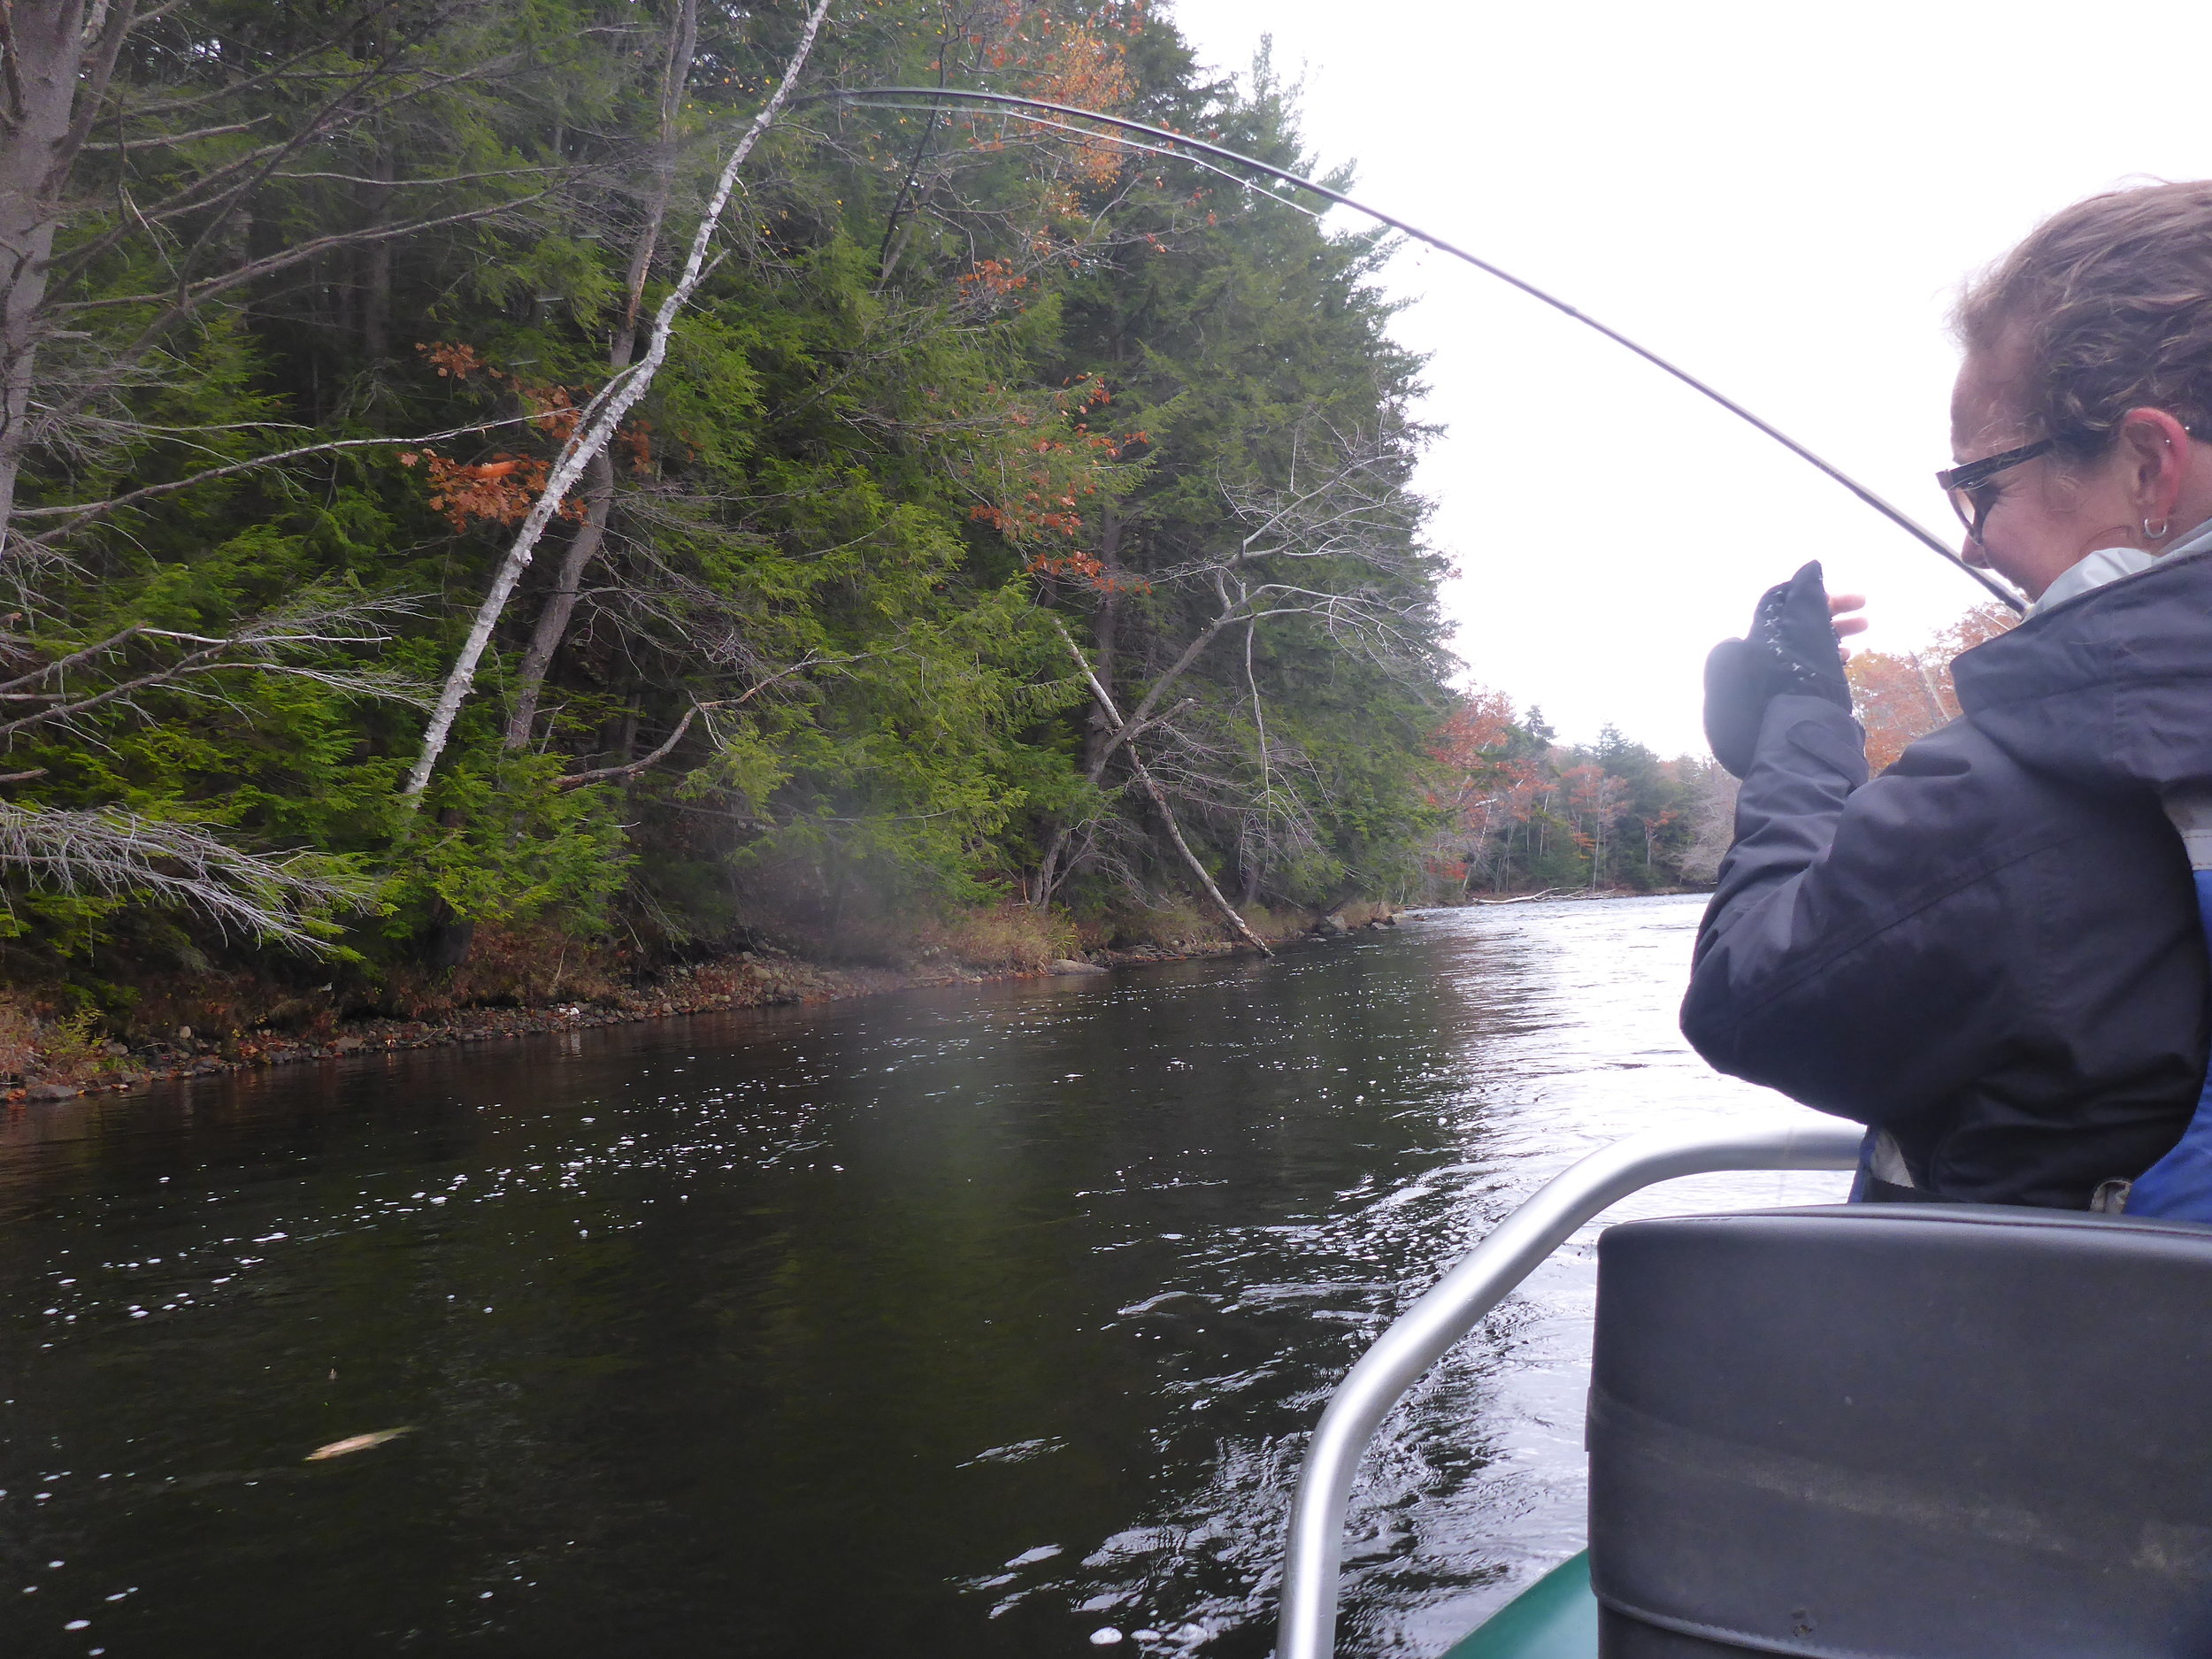 """Meredith's first day fly fishing. She landed 2 on a chartreuse egg and 2 on the """"Jumping Jack Flash"""""""